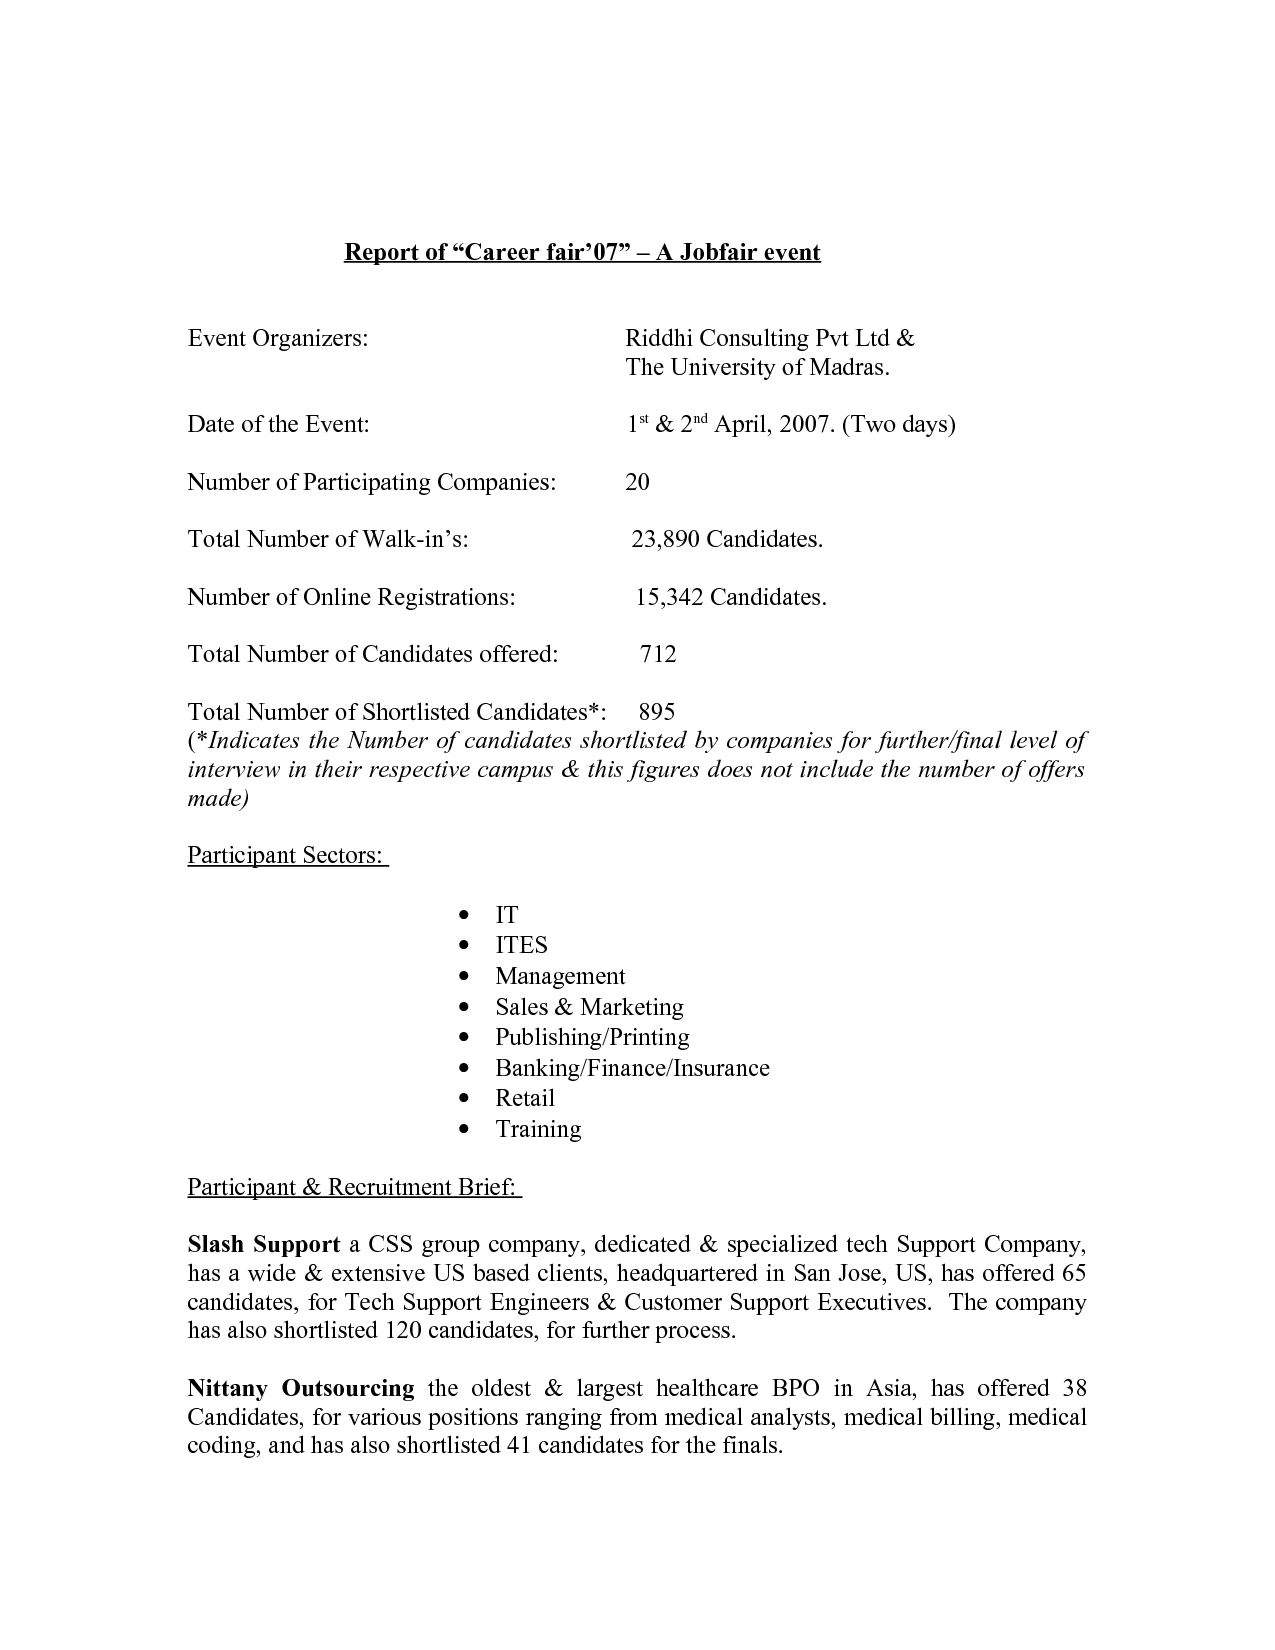 Resume Format For Freshers Free Download Resume Format For Freshers Free  Download, Resume Format For  Resume For Jobs